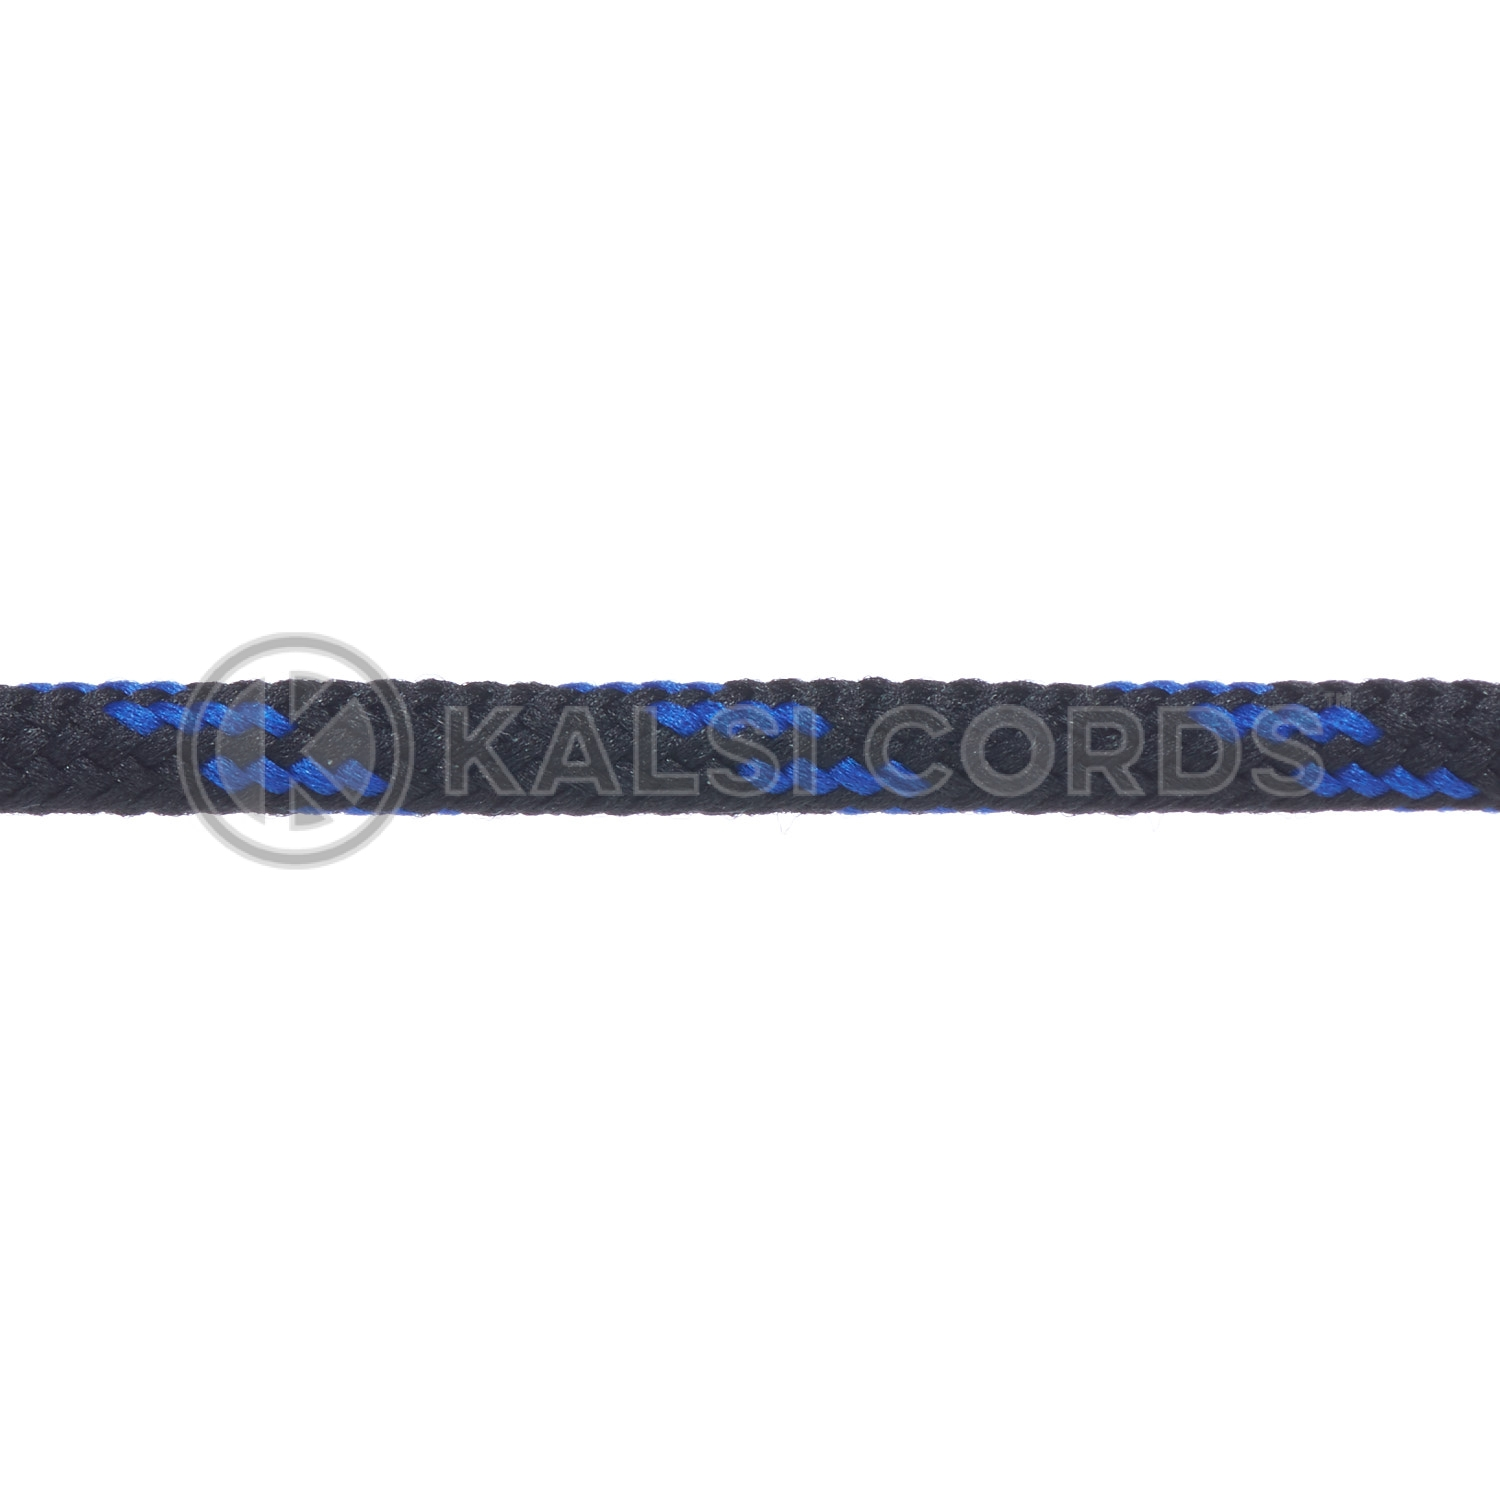 T621 5mm Round Cord Shoe Laces Black Royal Blue 4 Fleck Kids Trainers Adults Hiking Walking Boots Kalsi Cords